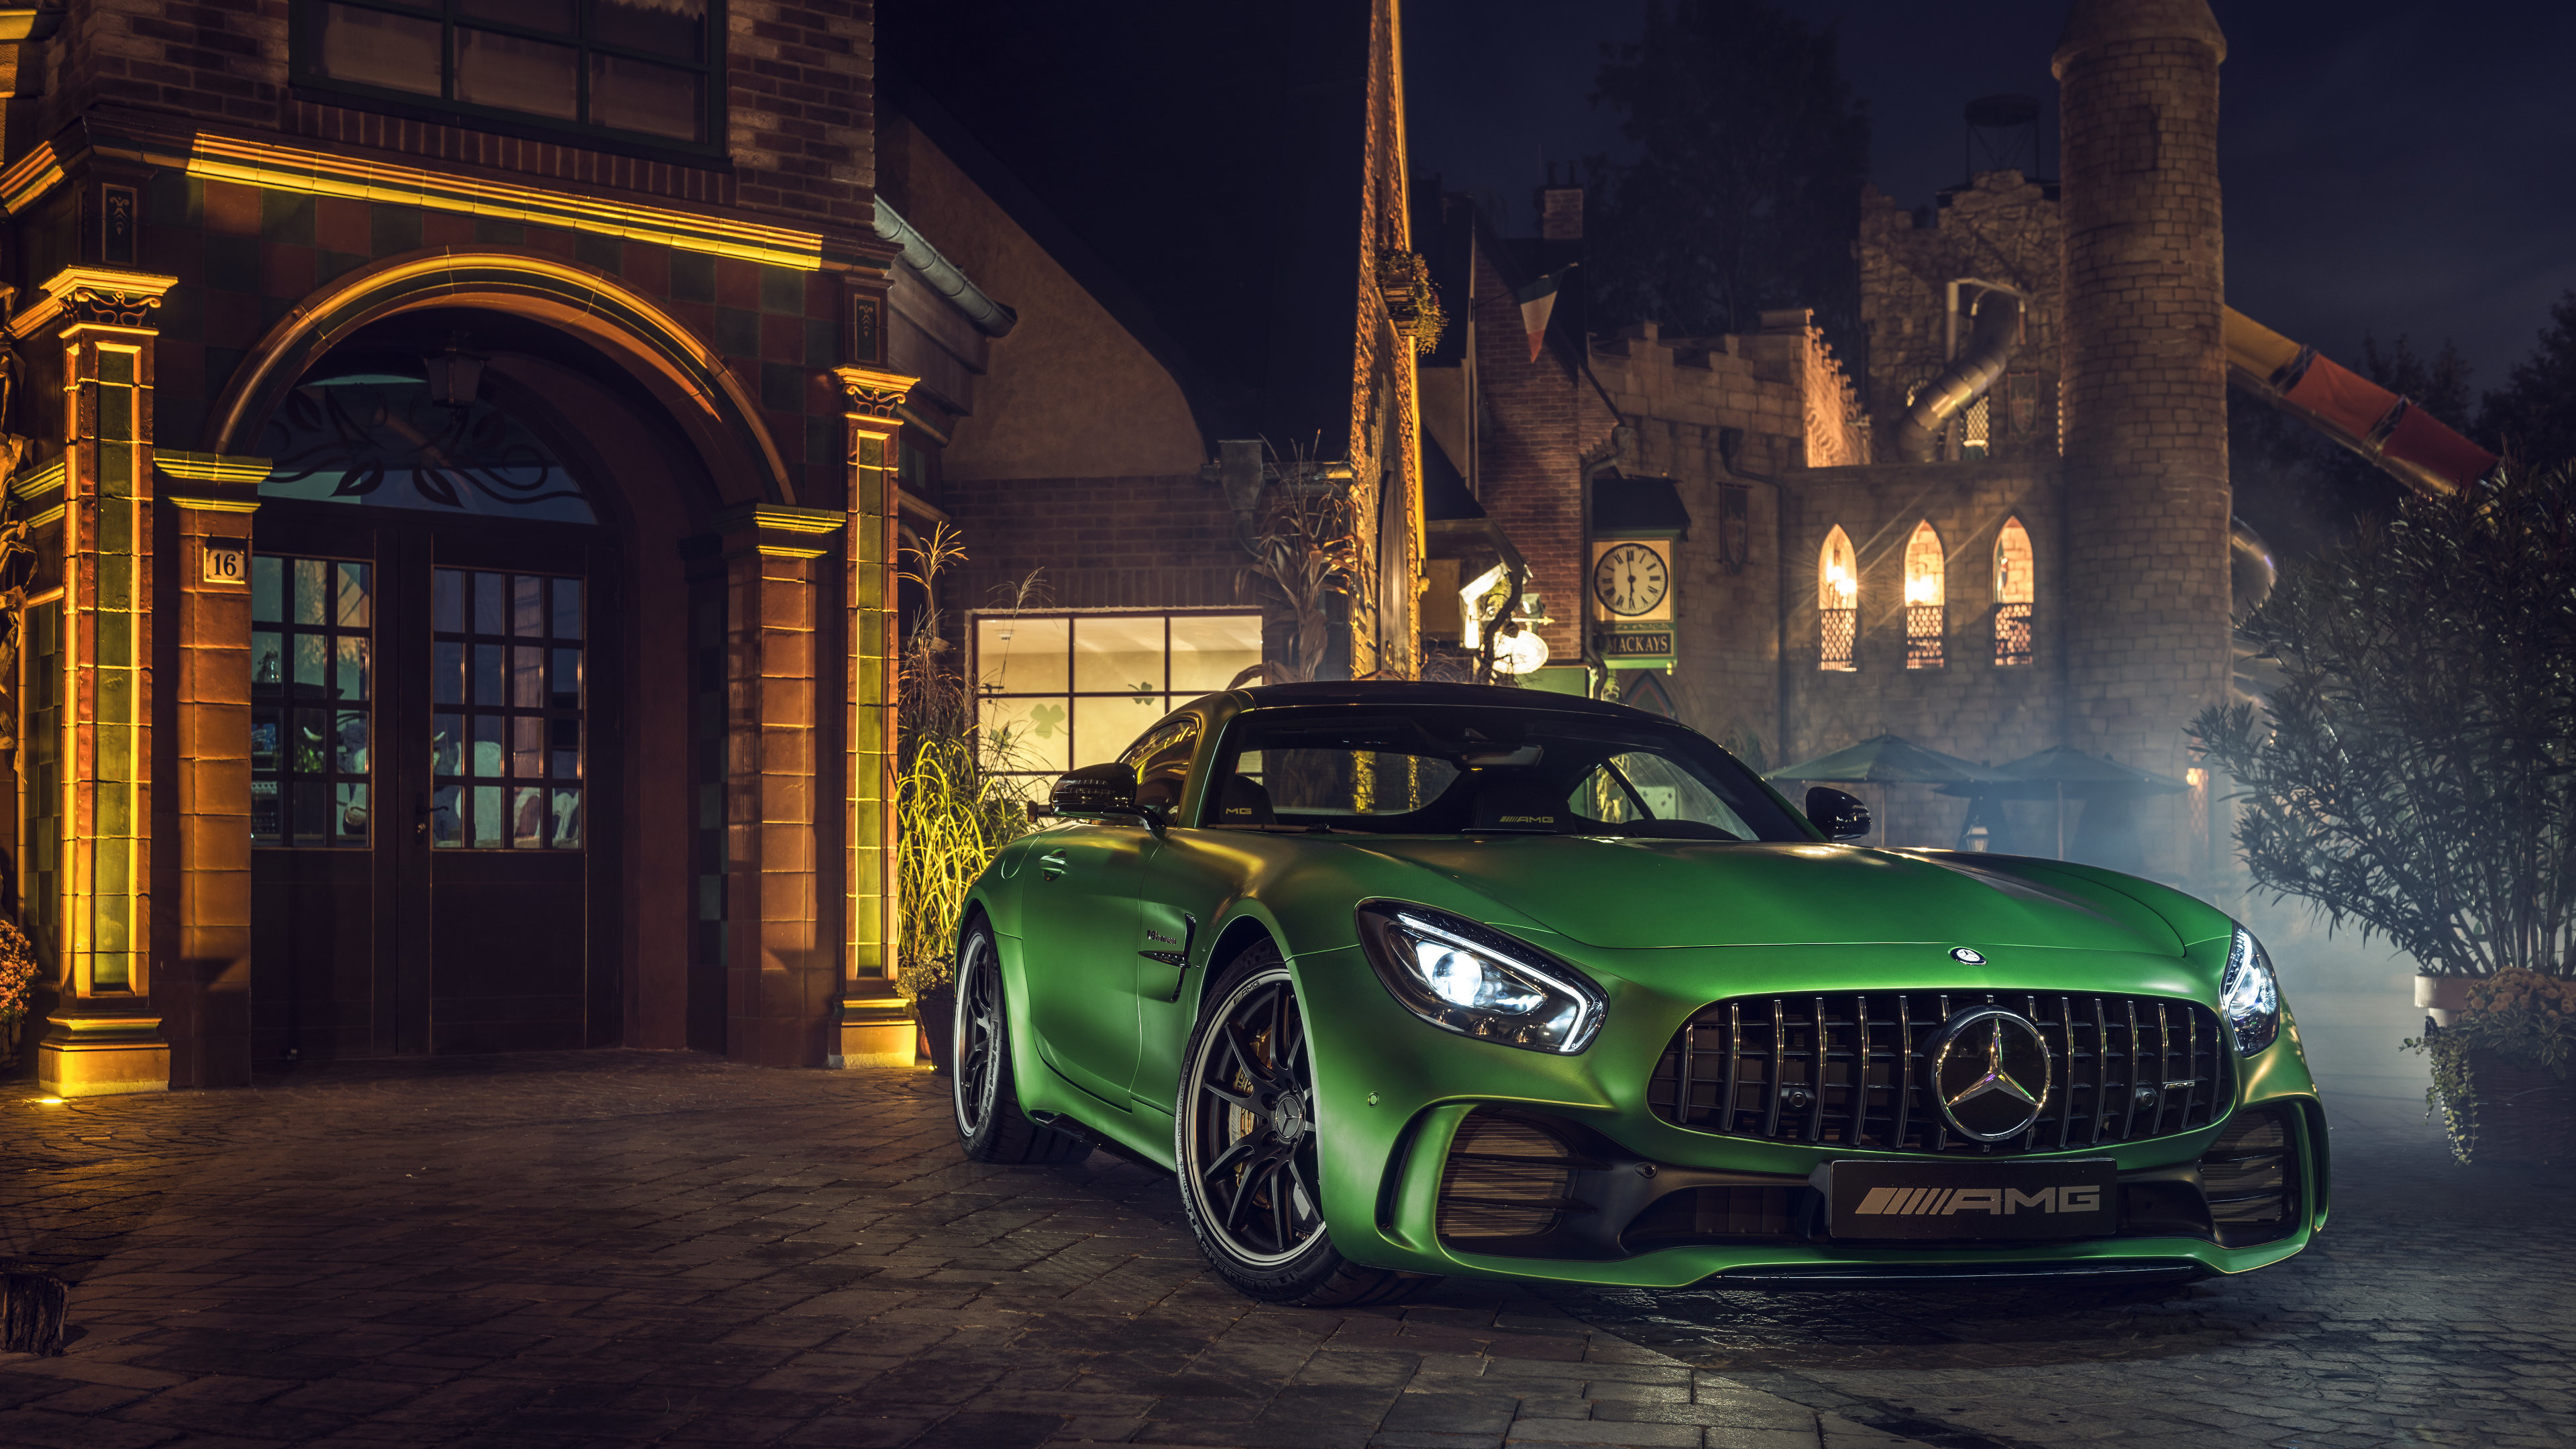 Mercedes Benz Amg Wallpapers (84+ background pictures)